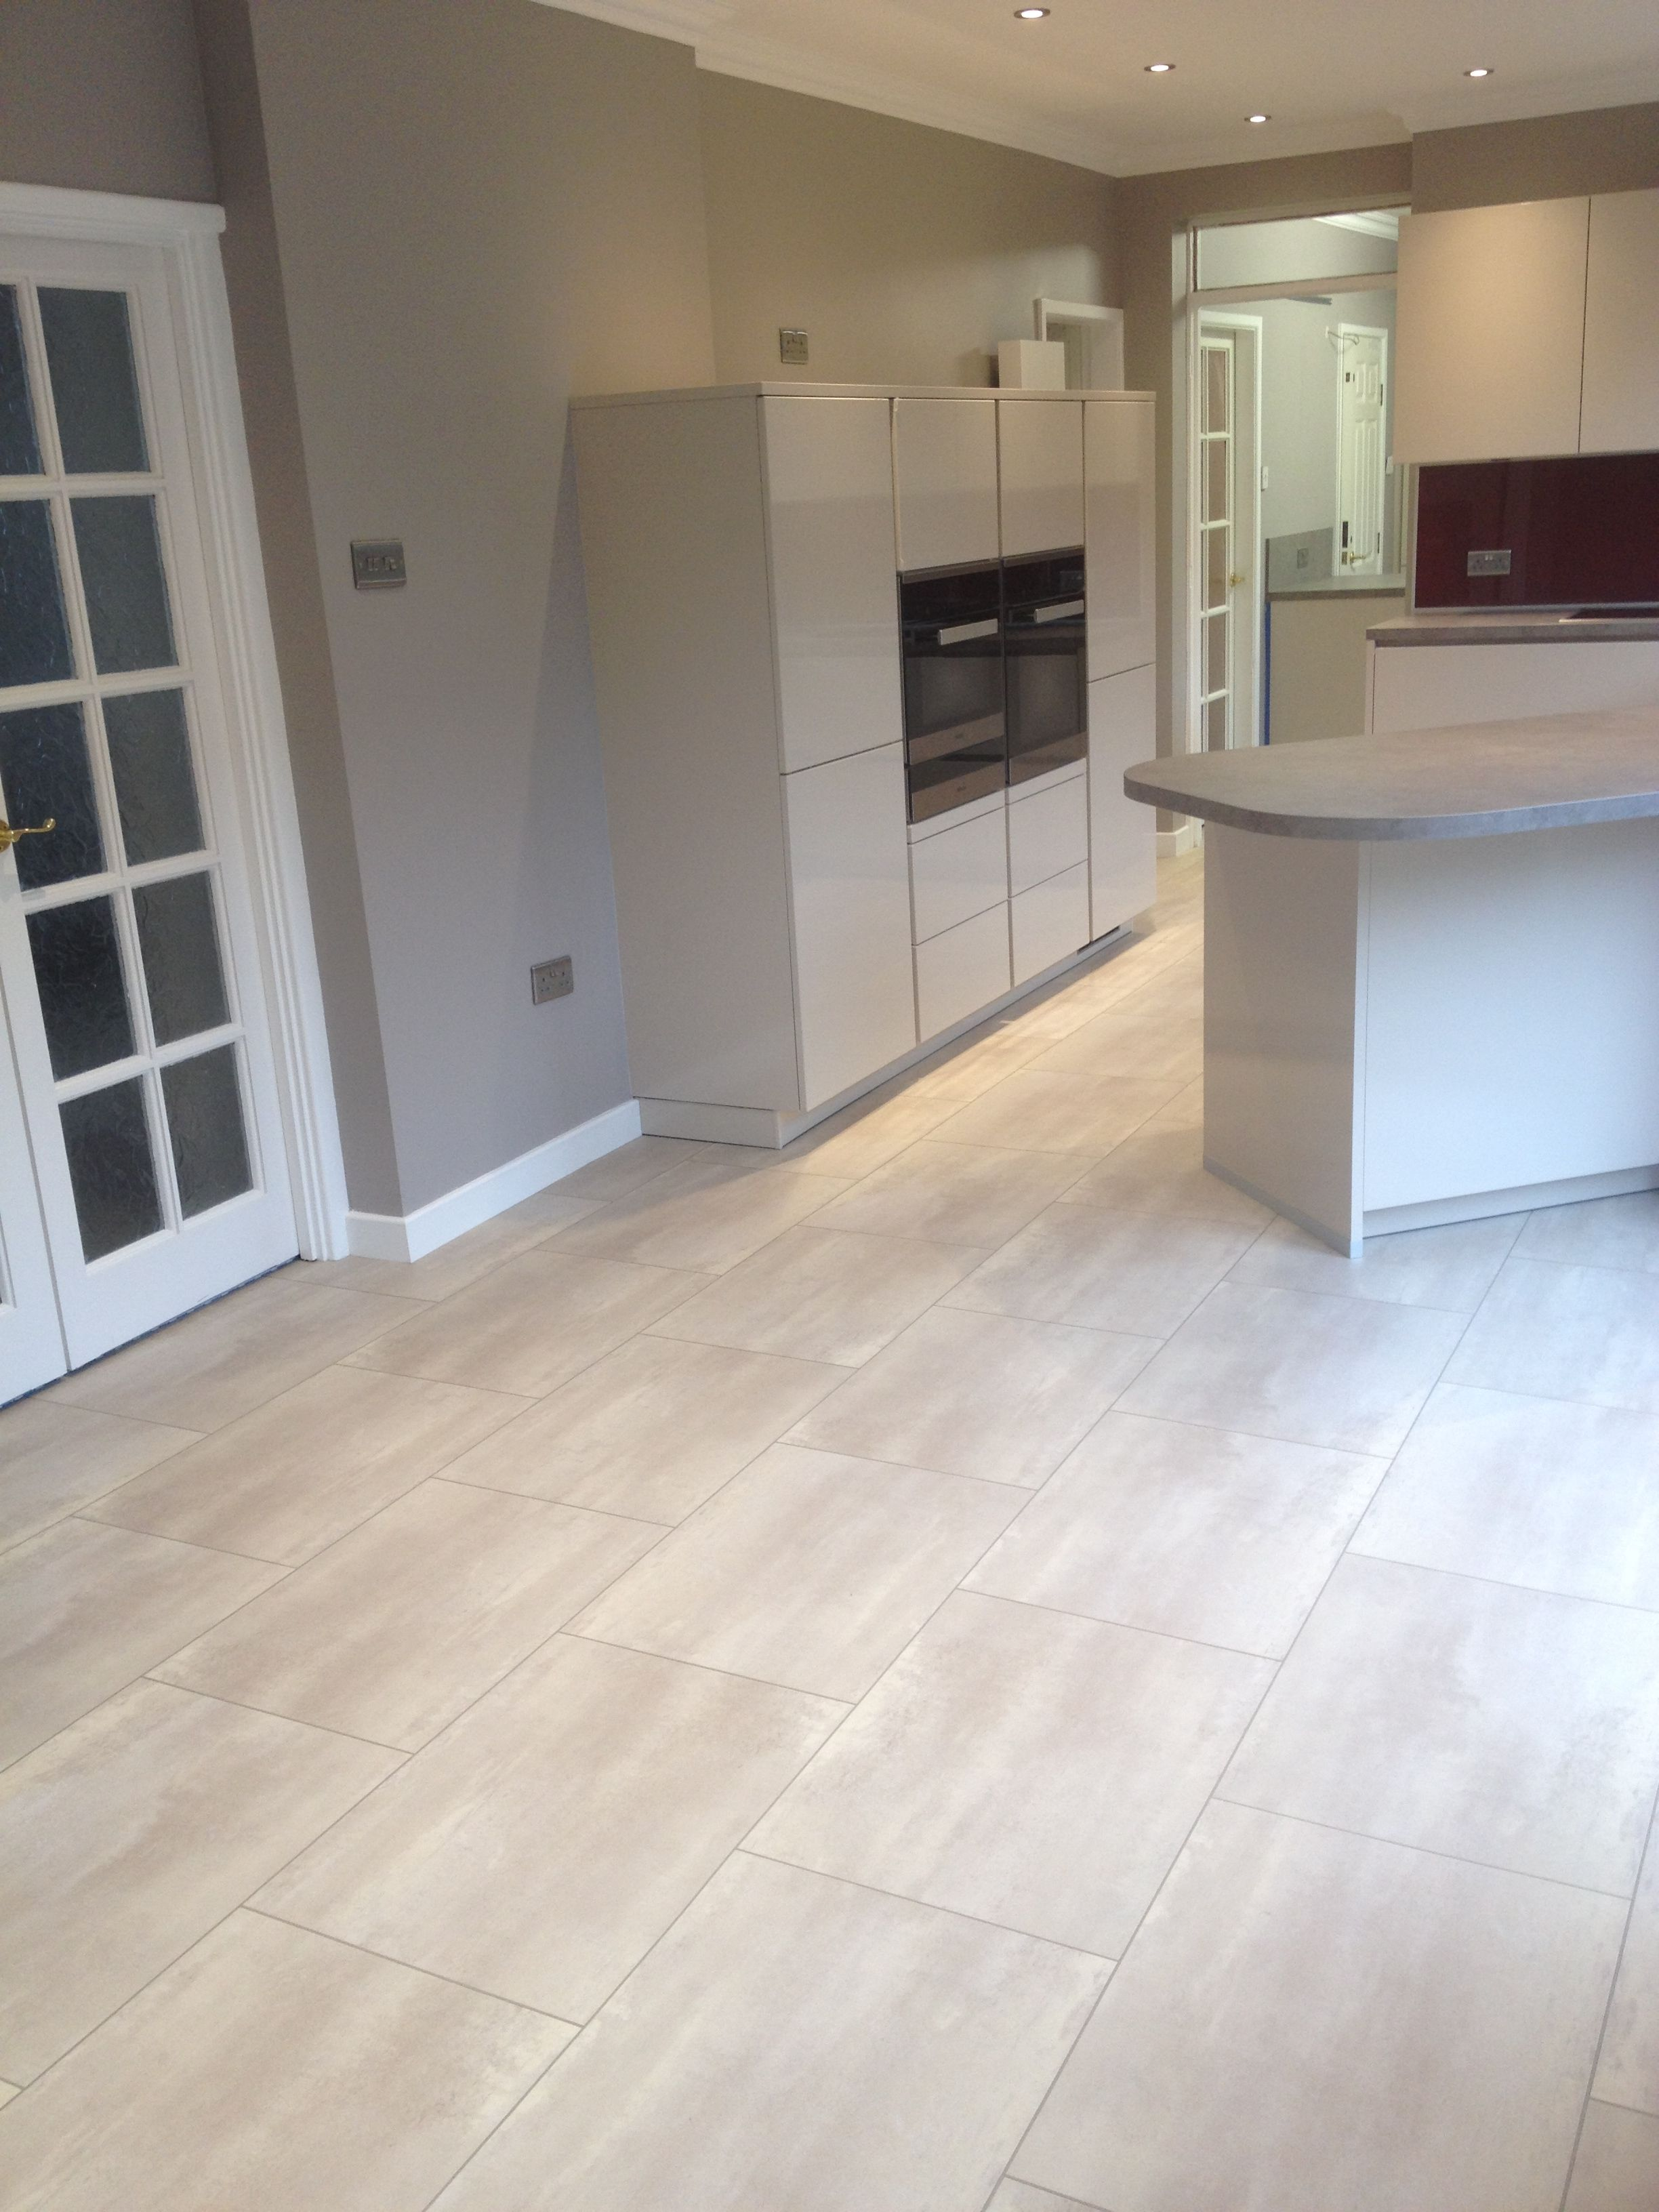 Karndean opus flooring installed by us the large tiles work in karndean opus flooring installed by us the large tiles work in this stunning kitchen dailygadgetfo Choice Image